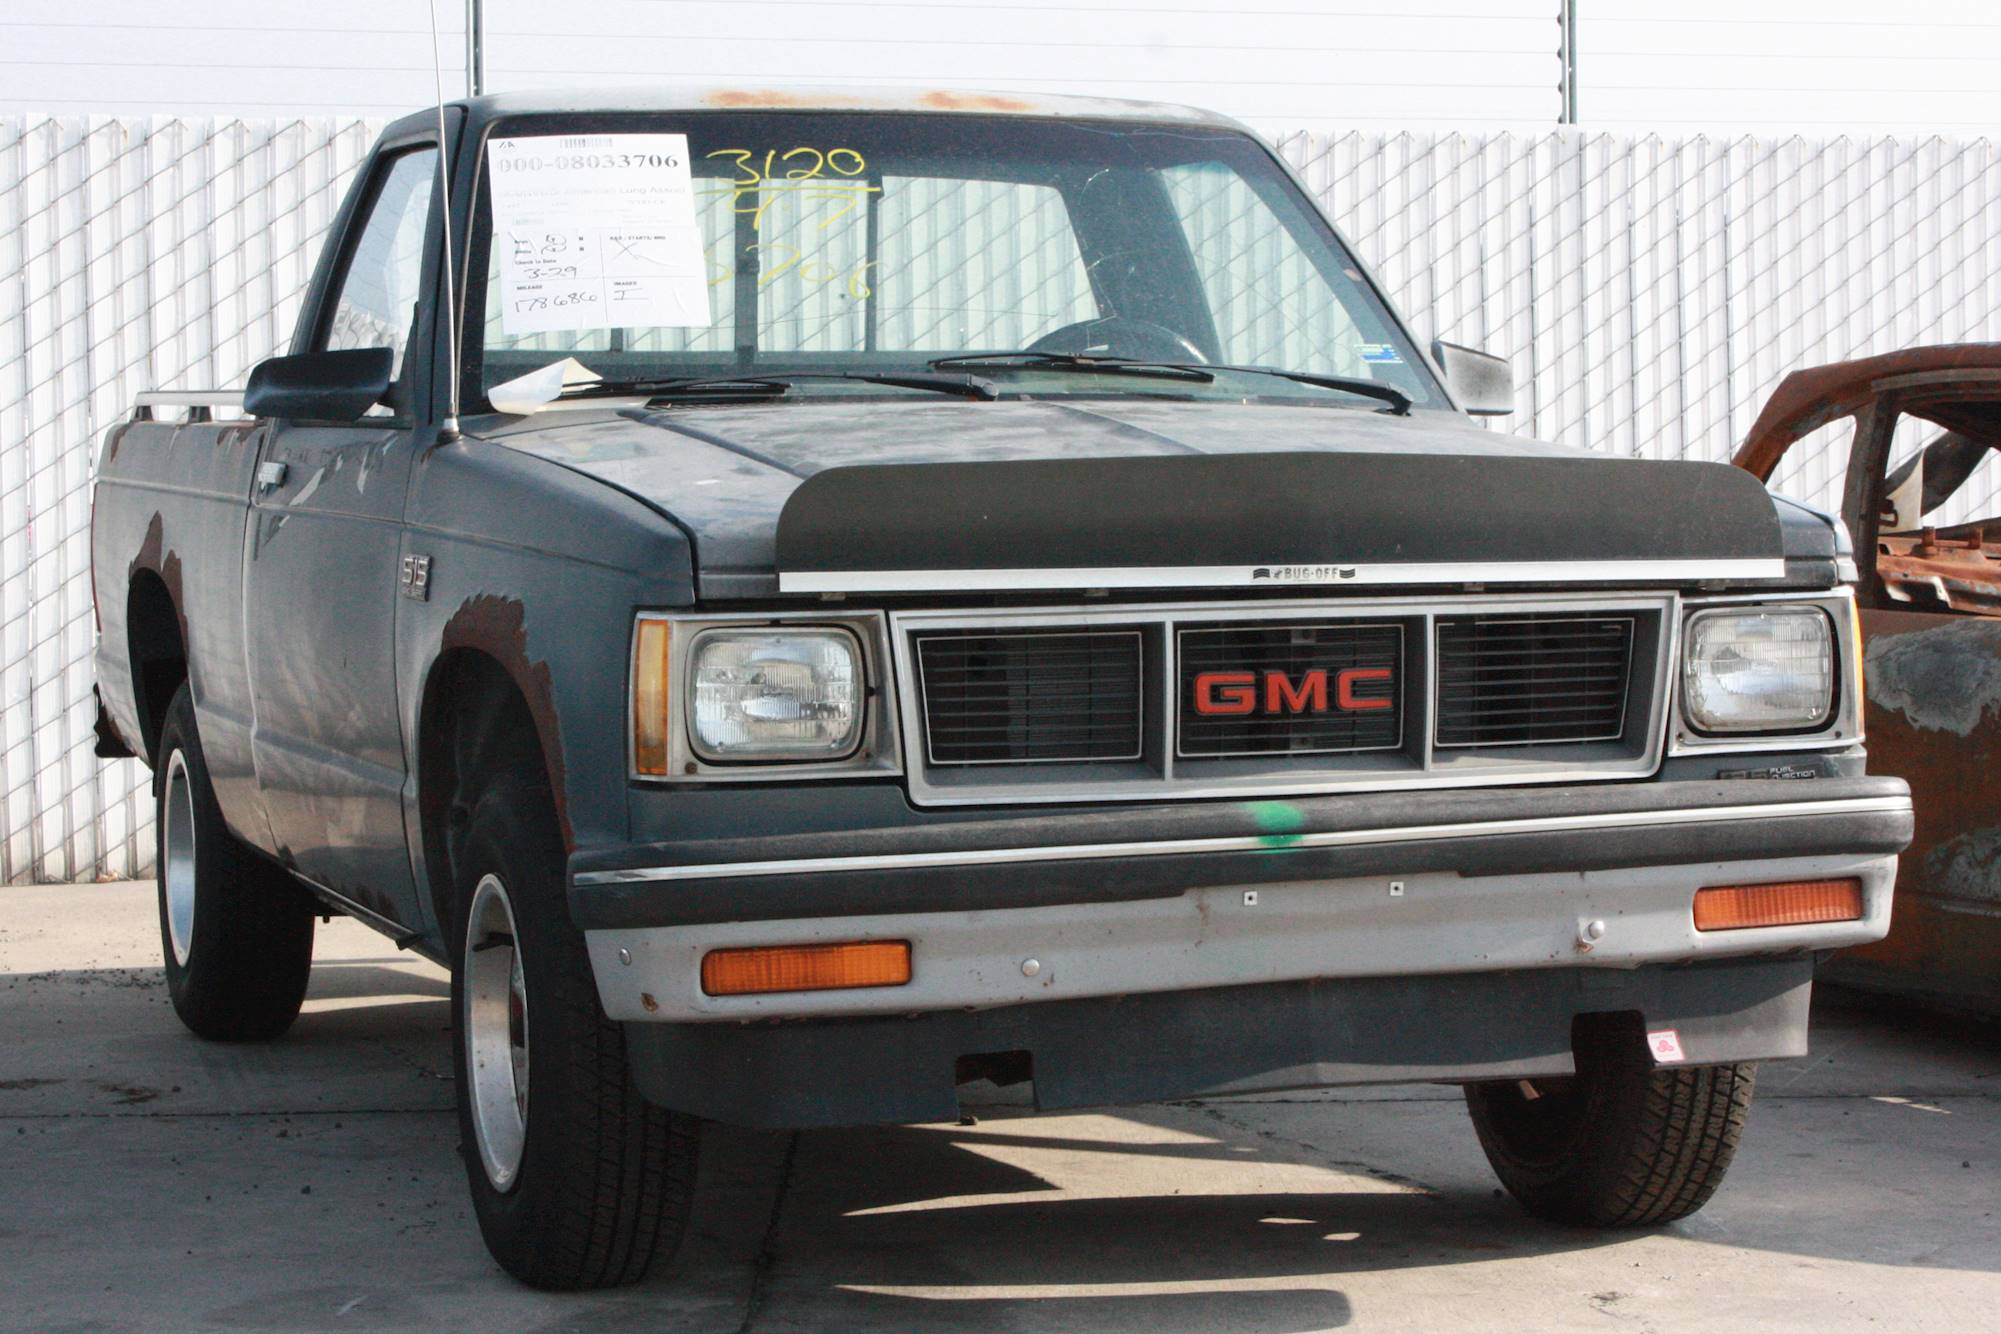 1991 Gmc S 15 Jimmy Sls 4dr Suv 4 3l V6 4x4 Manual